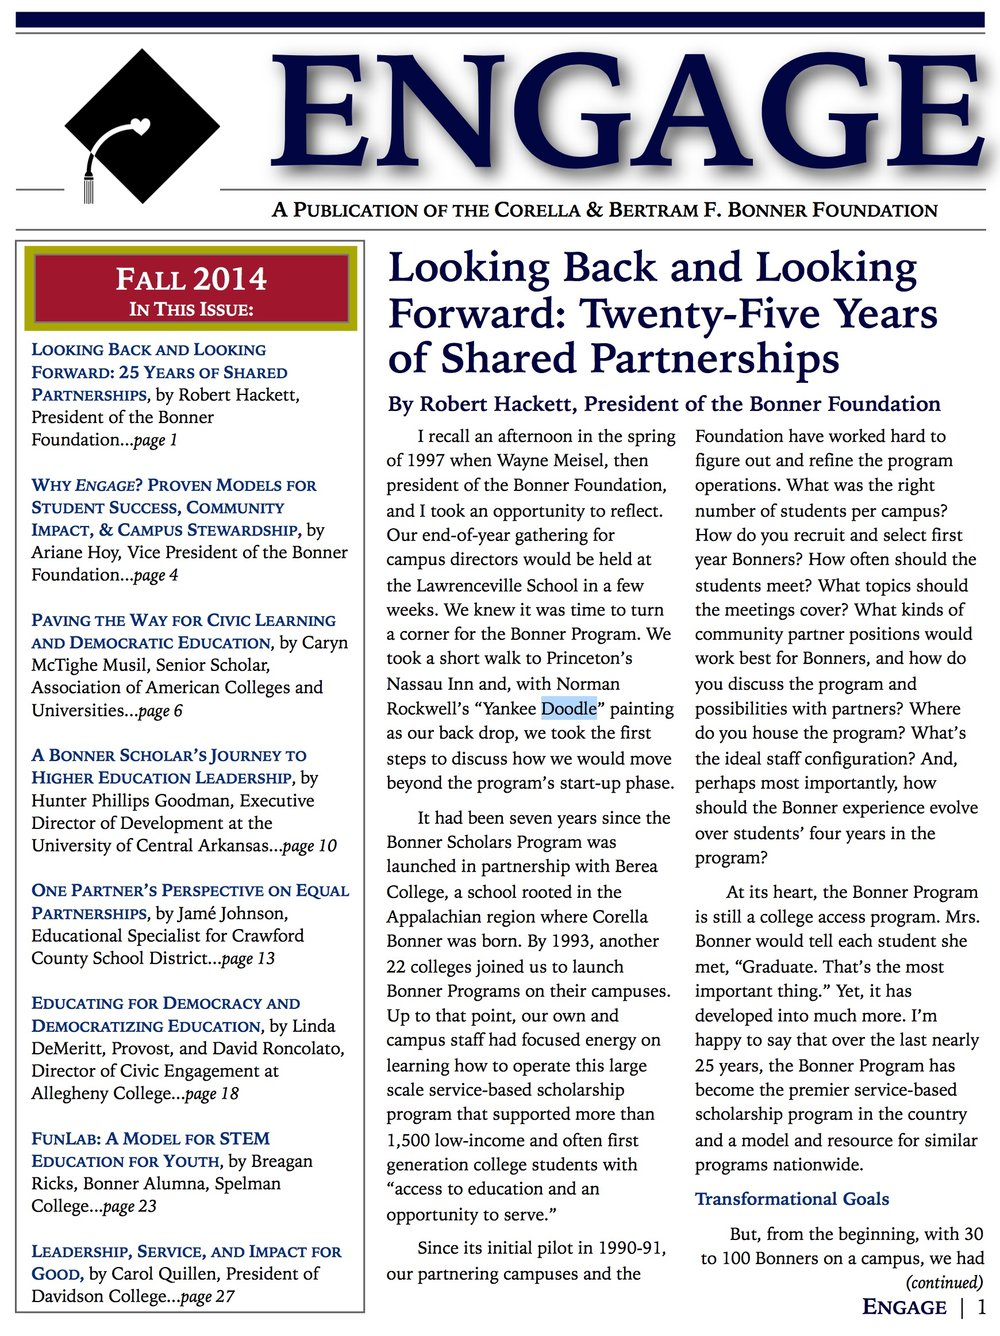 This online publication featured articles from a number of different authors reflecting on the accomplishments and emerging new directions of the Bonner Program's work and civic engagement on campuses. The issue highlights a number of ways in which community engagement has begun to reshape undergraduate education.